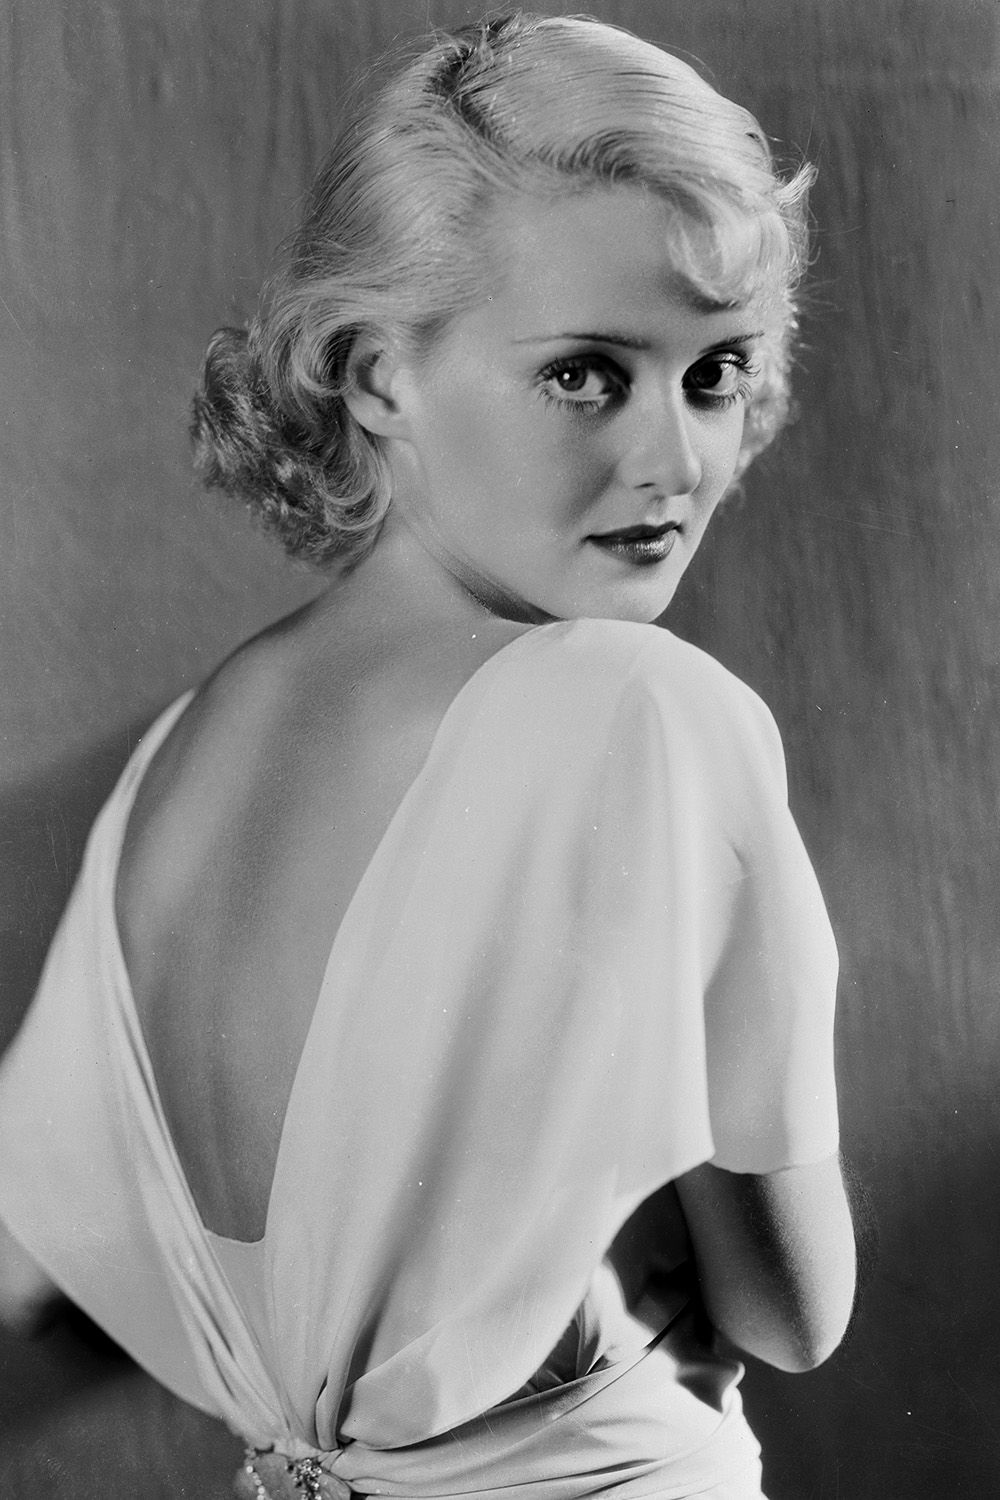 1932:  American actress Bette Davis (1908 - 1989) as Madge in the film, 'Cabin in the Cotton', directed by Michael Curtiz.  (Photo via John Kobal Foundation/Getty Images)